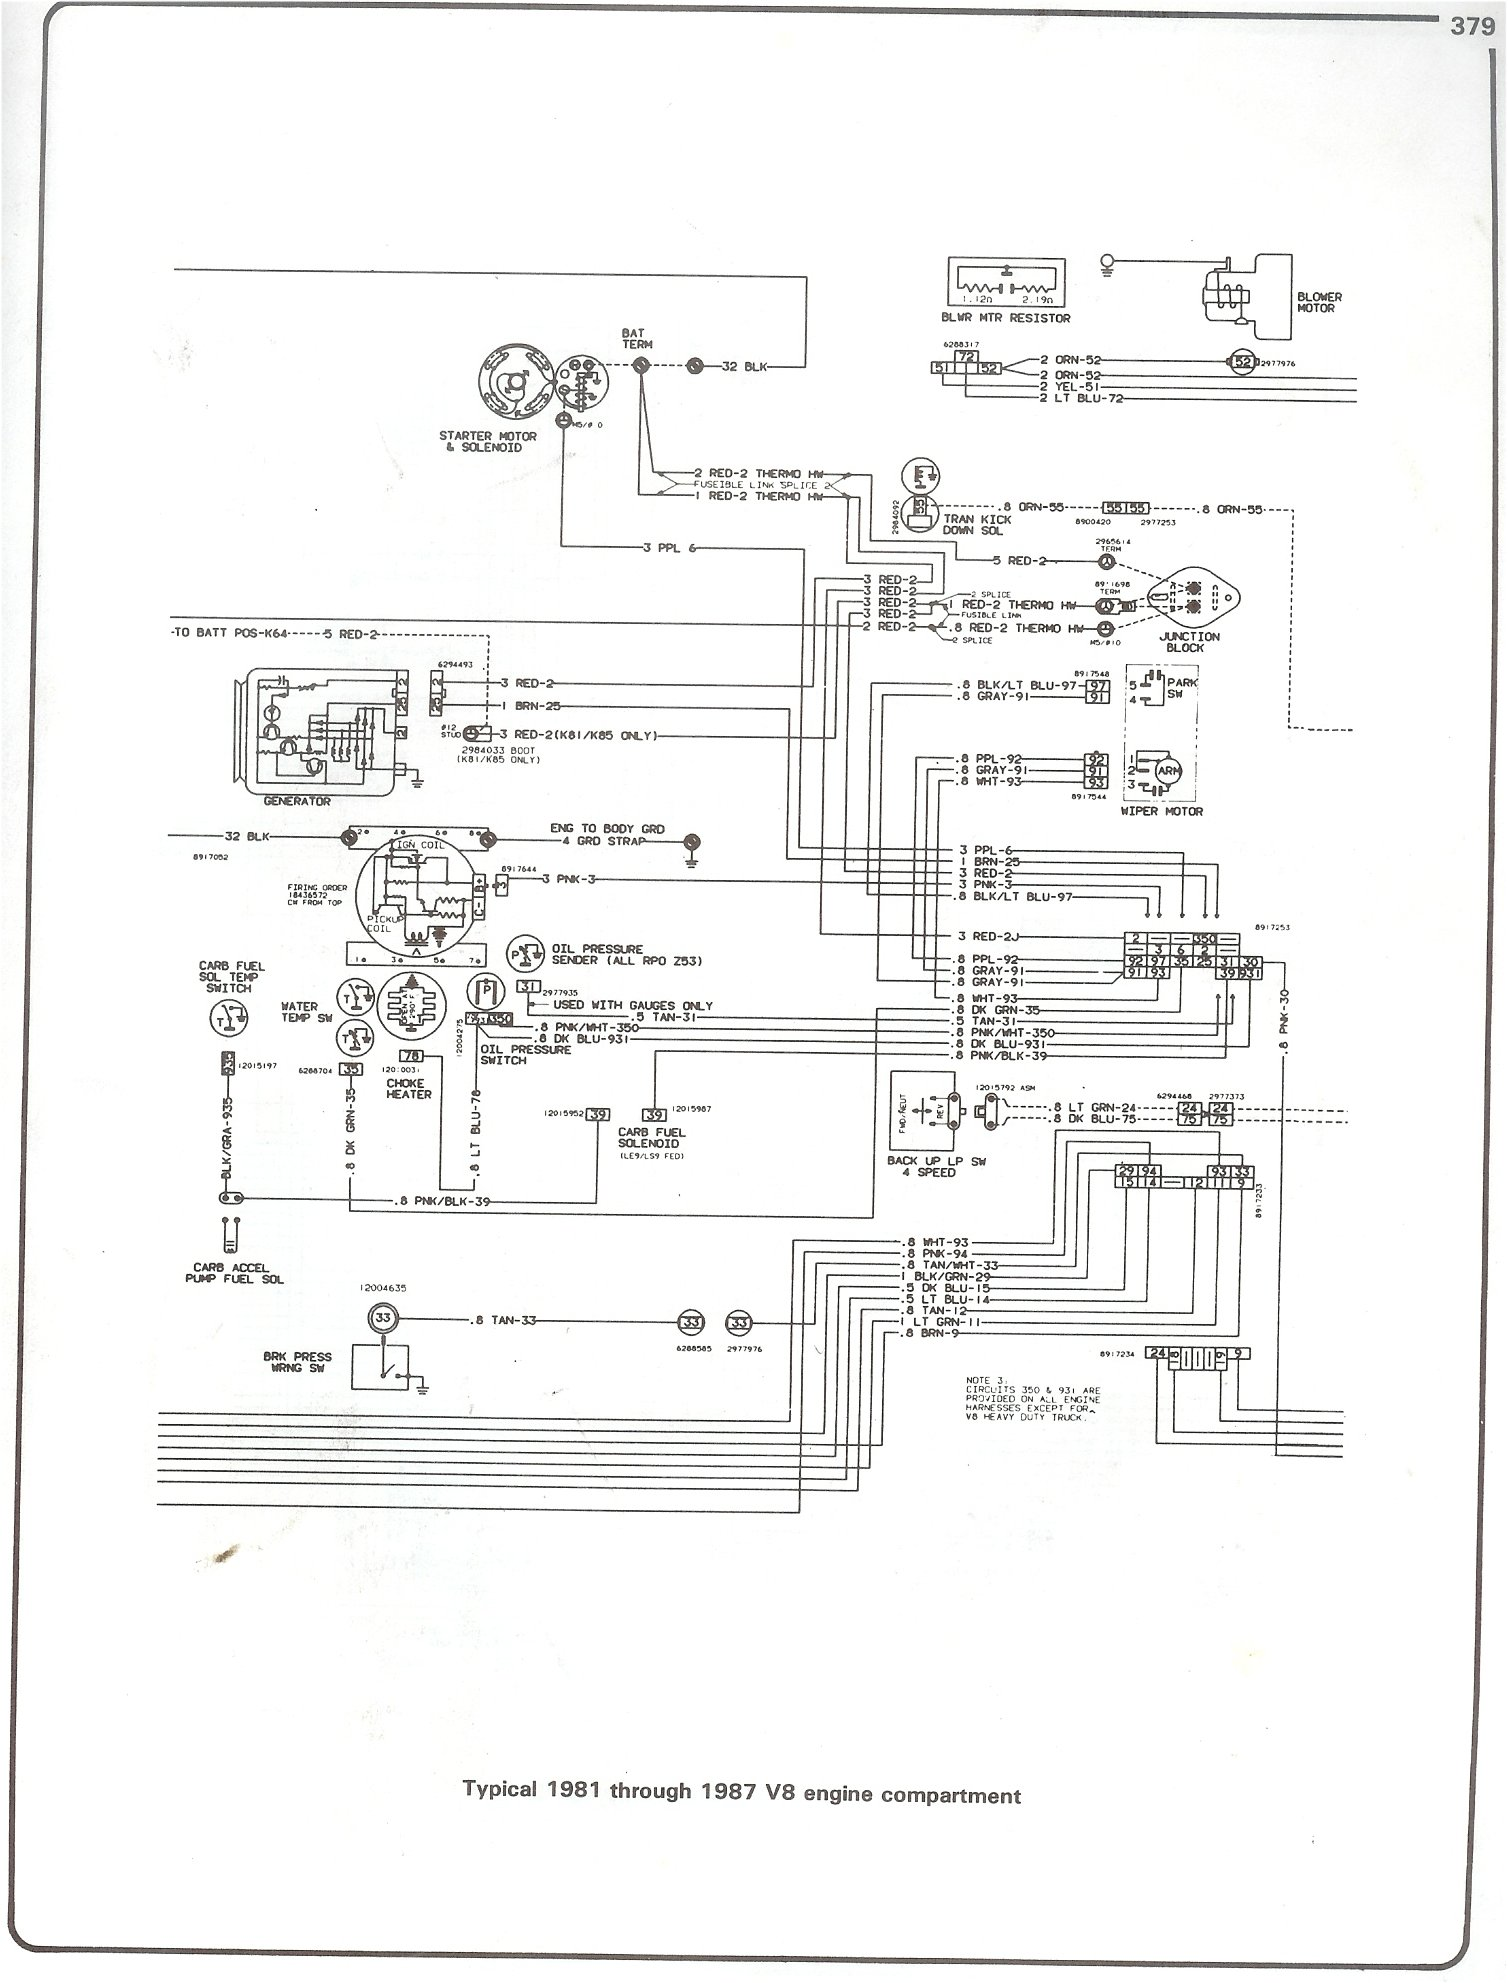 Wiring Diagram Air Conditioning Auto Electrical 2000 Tahoe Fan Switch Complete 73